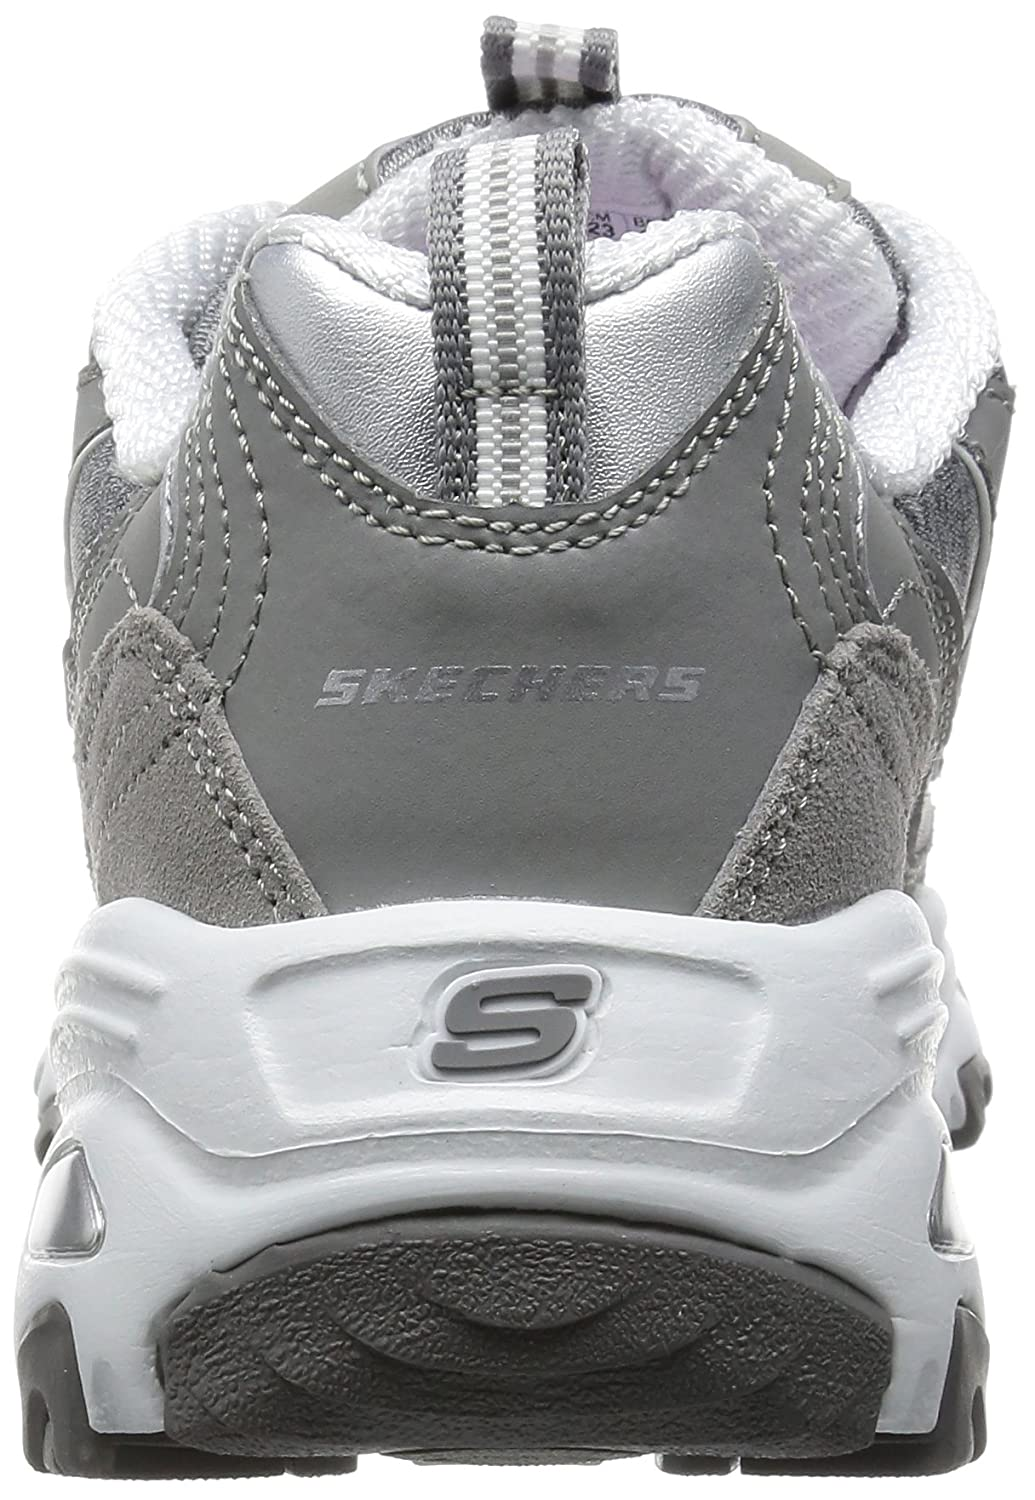 Skechers-D-039-Lites-Women-039-s-Casual-Lightweight-Fashion-Sneakers-Athletic-Shoes thumbnail 119